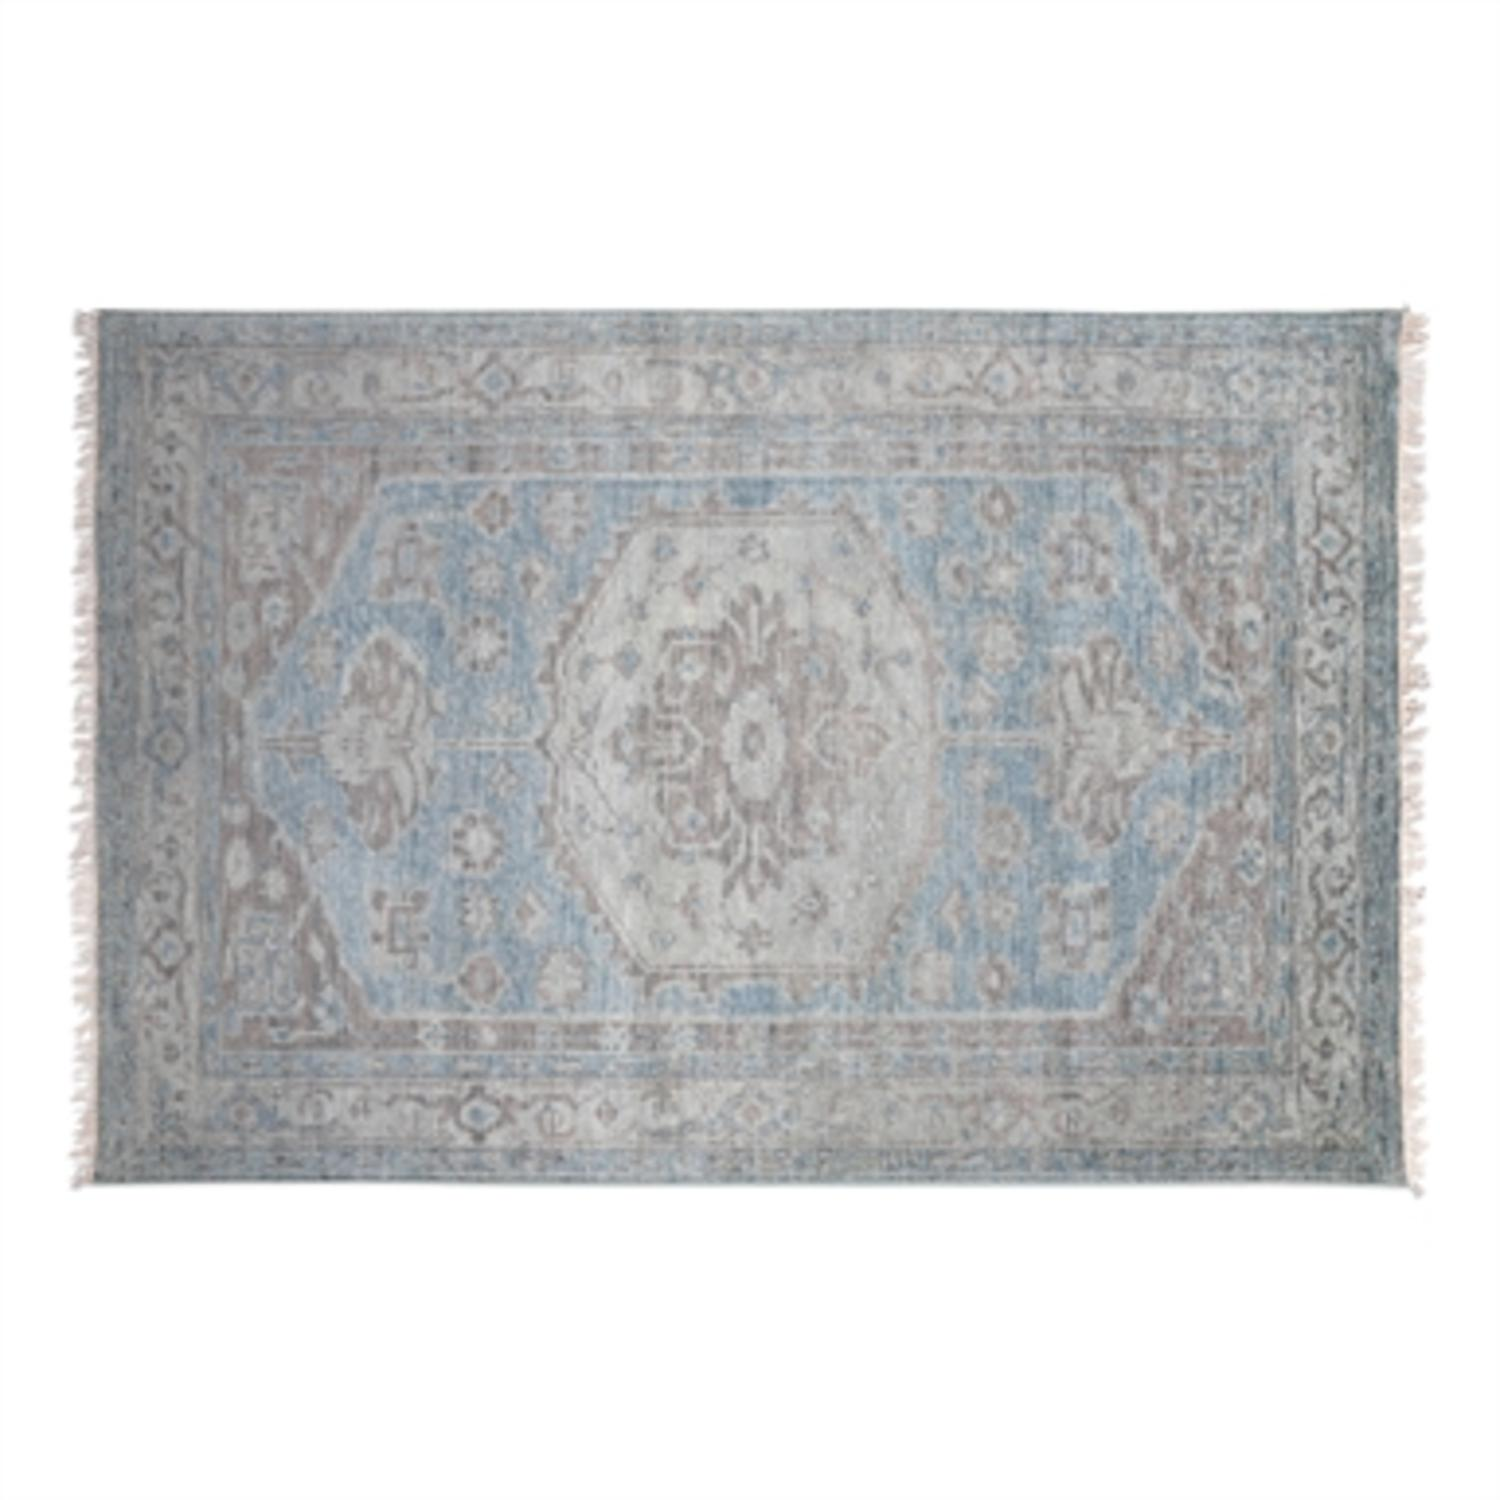 6' x 9' Adana Washed Gray, Sage Green and Beige Hand Knotted Wool Area Throw Rug